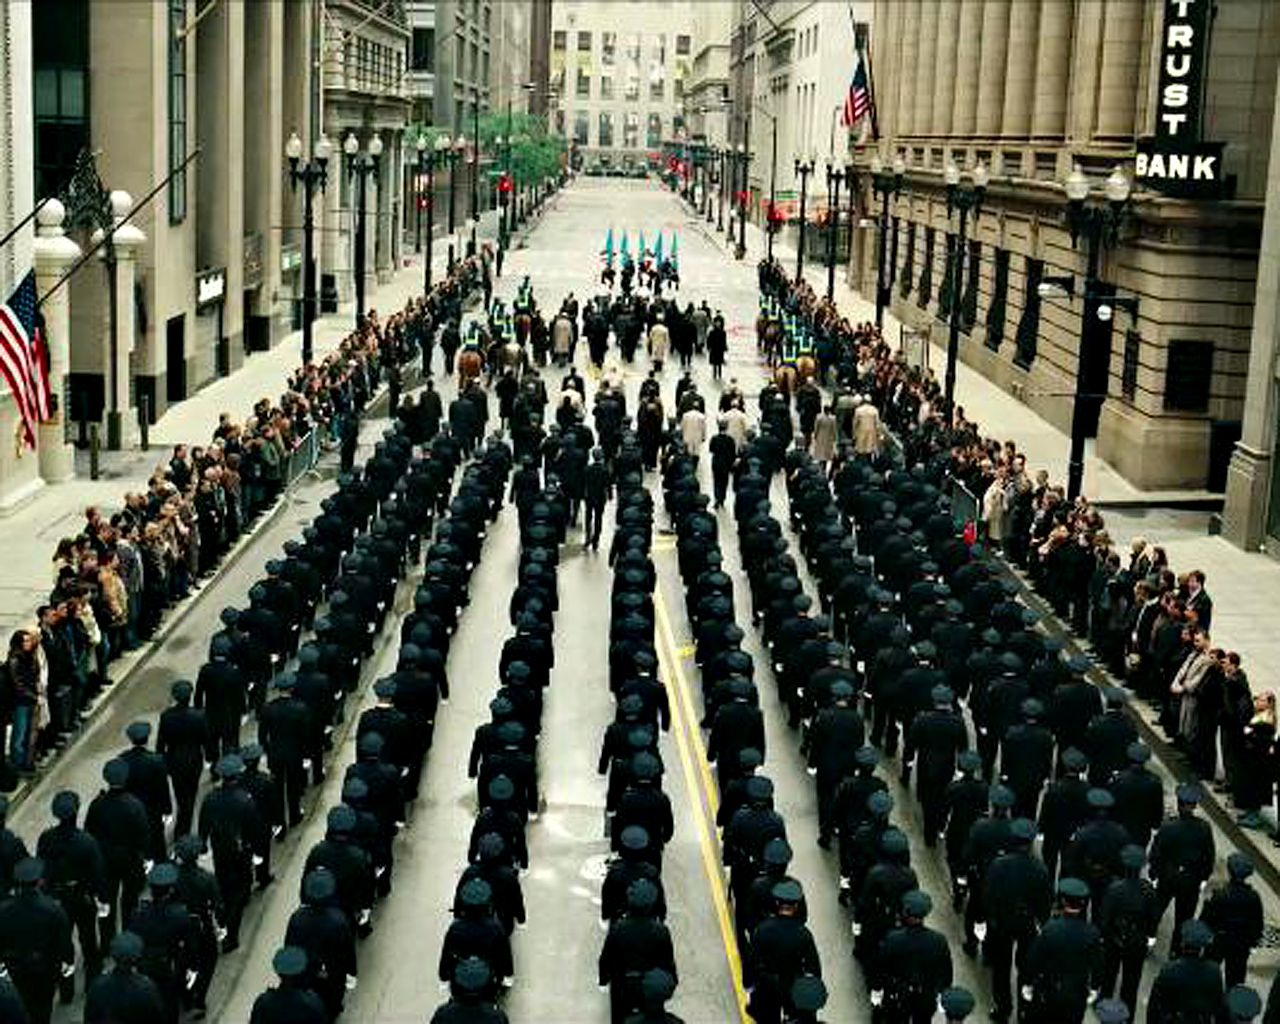 Gotham Cops Parade In Streets Wallpaper 1280x1024